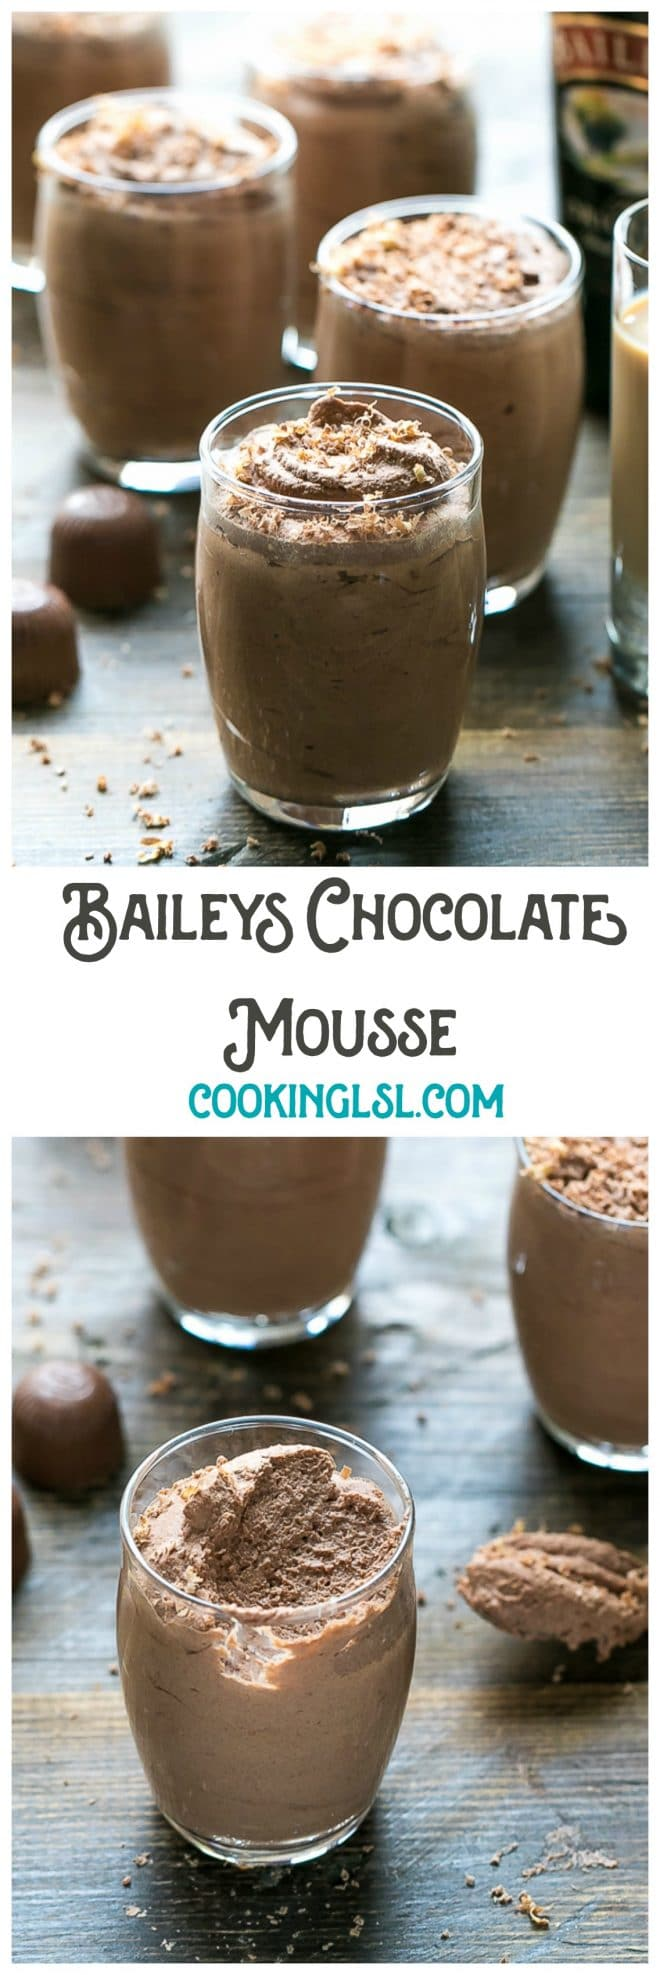 Easy Baileys Chocolate Mousse Recipe - Cooking LSL